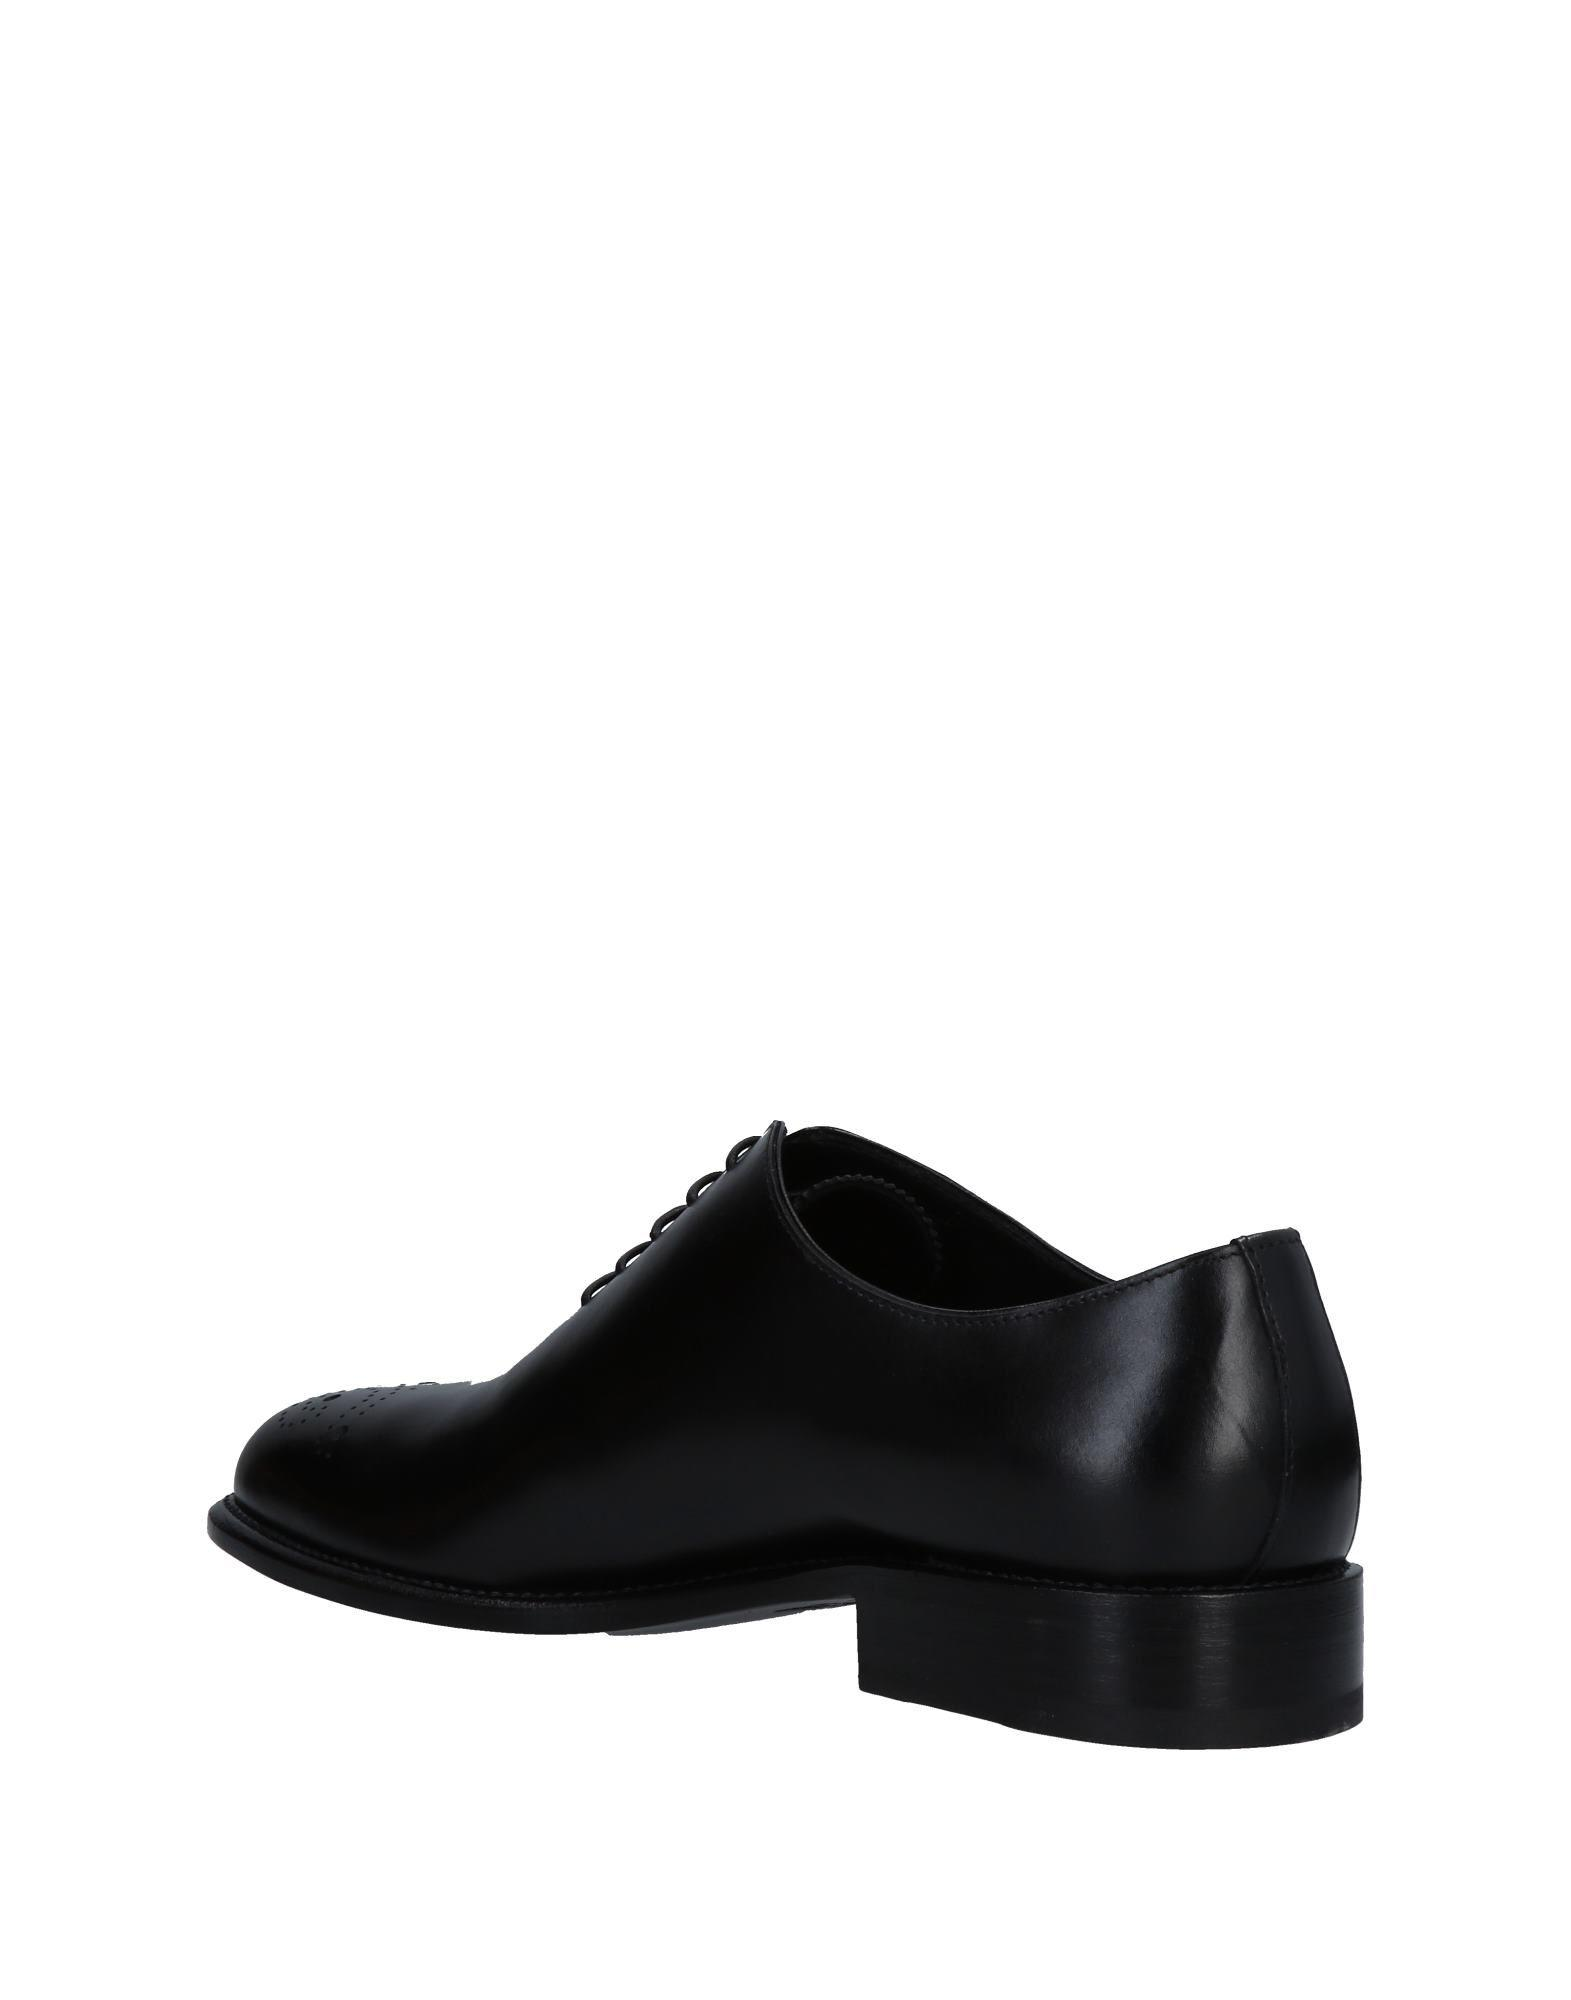 FOOTWEAR - Lace-up shoes Tombolini